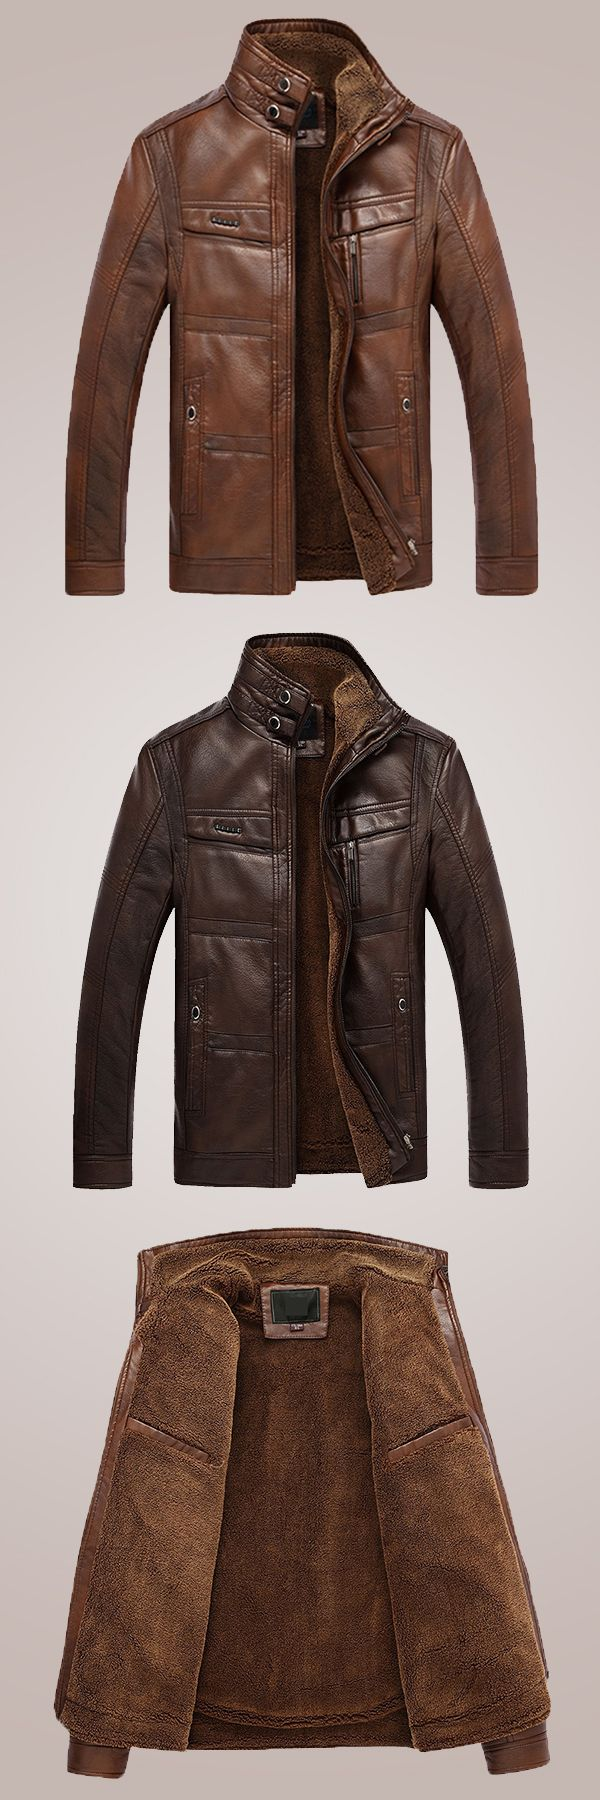 US$76.88 + Free shipping. Size: S~2XL. Color: Dark Coffee, Light Coffee. Fall in love with casual and outdoor style! Mens Faux Leather Thick Warm Fleece Stand Collar Multi Pocket Motorcycle Biker Jacket. #mens #jackets